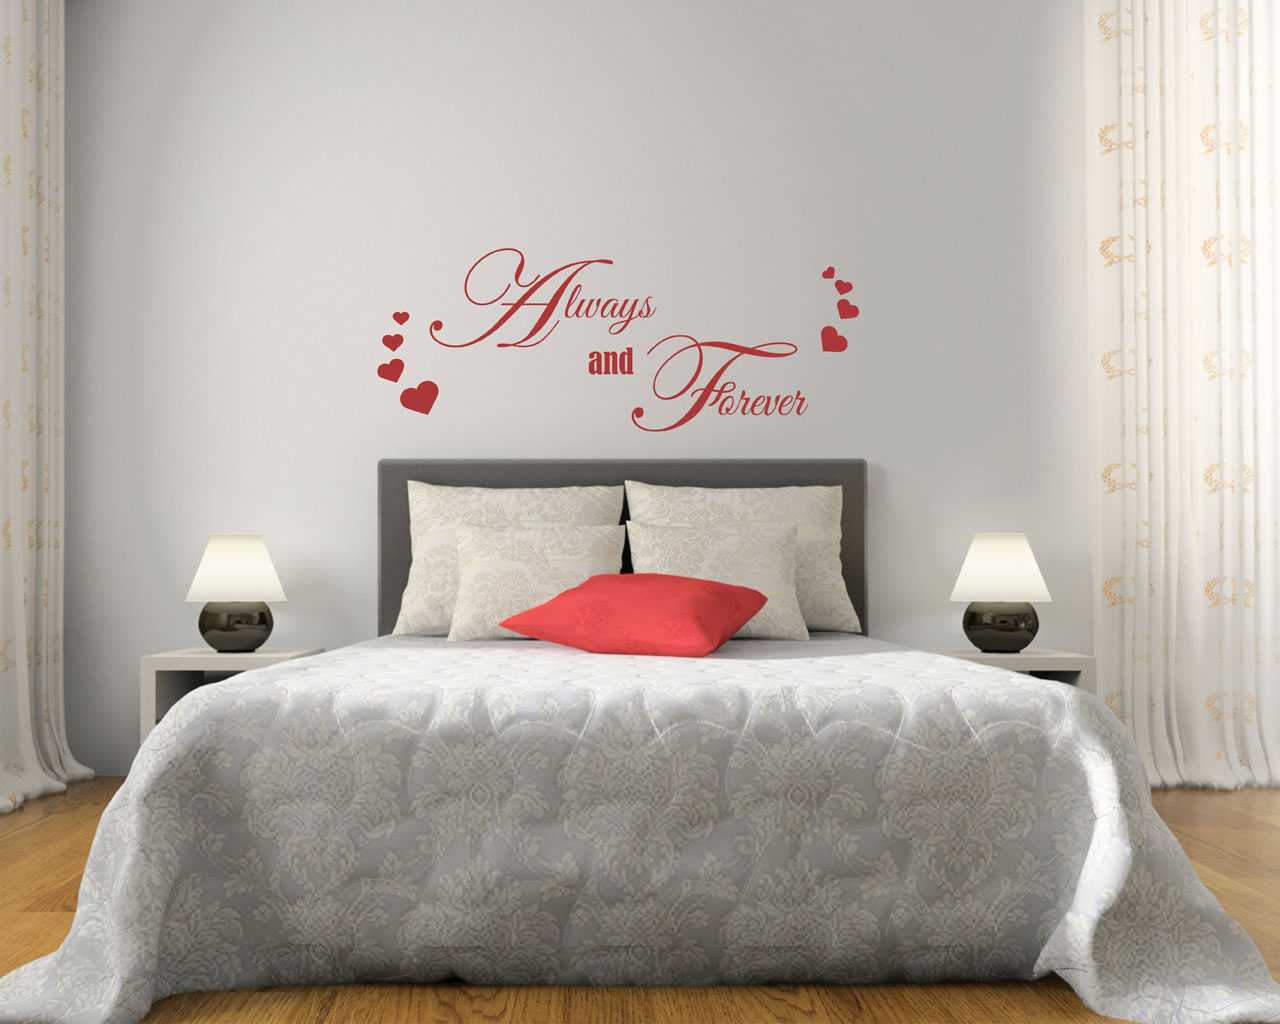 Always and forever amore adesivo murale interni - Stickers per camera da letto ...